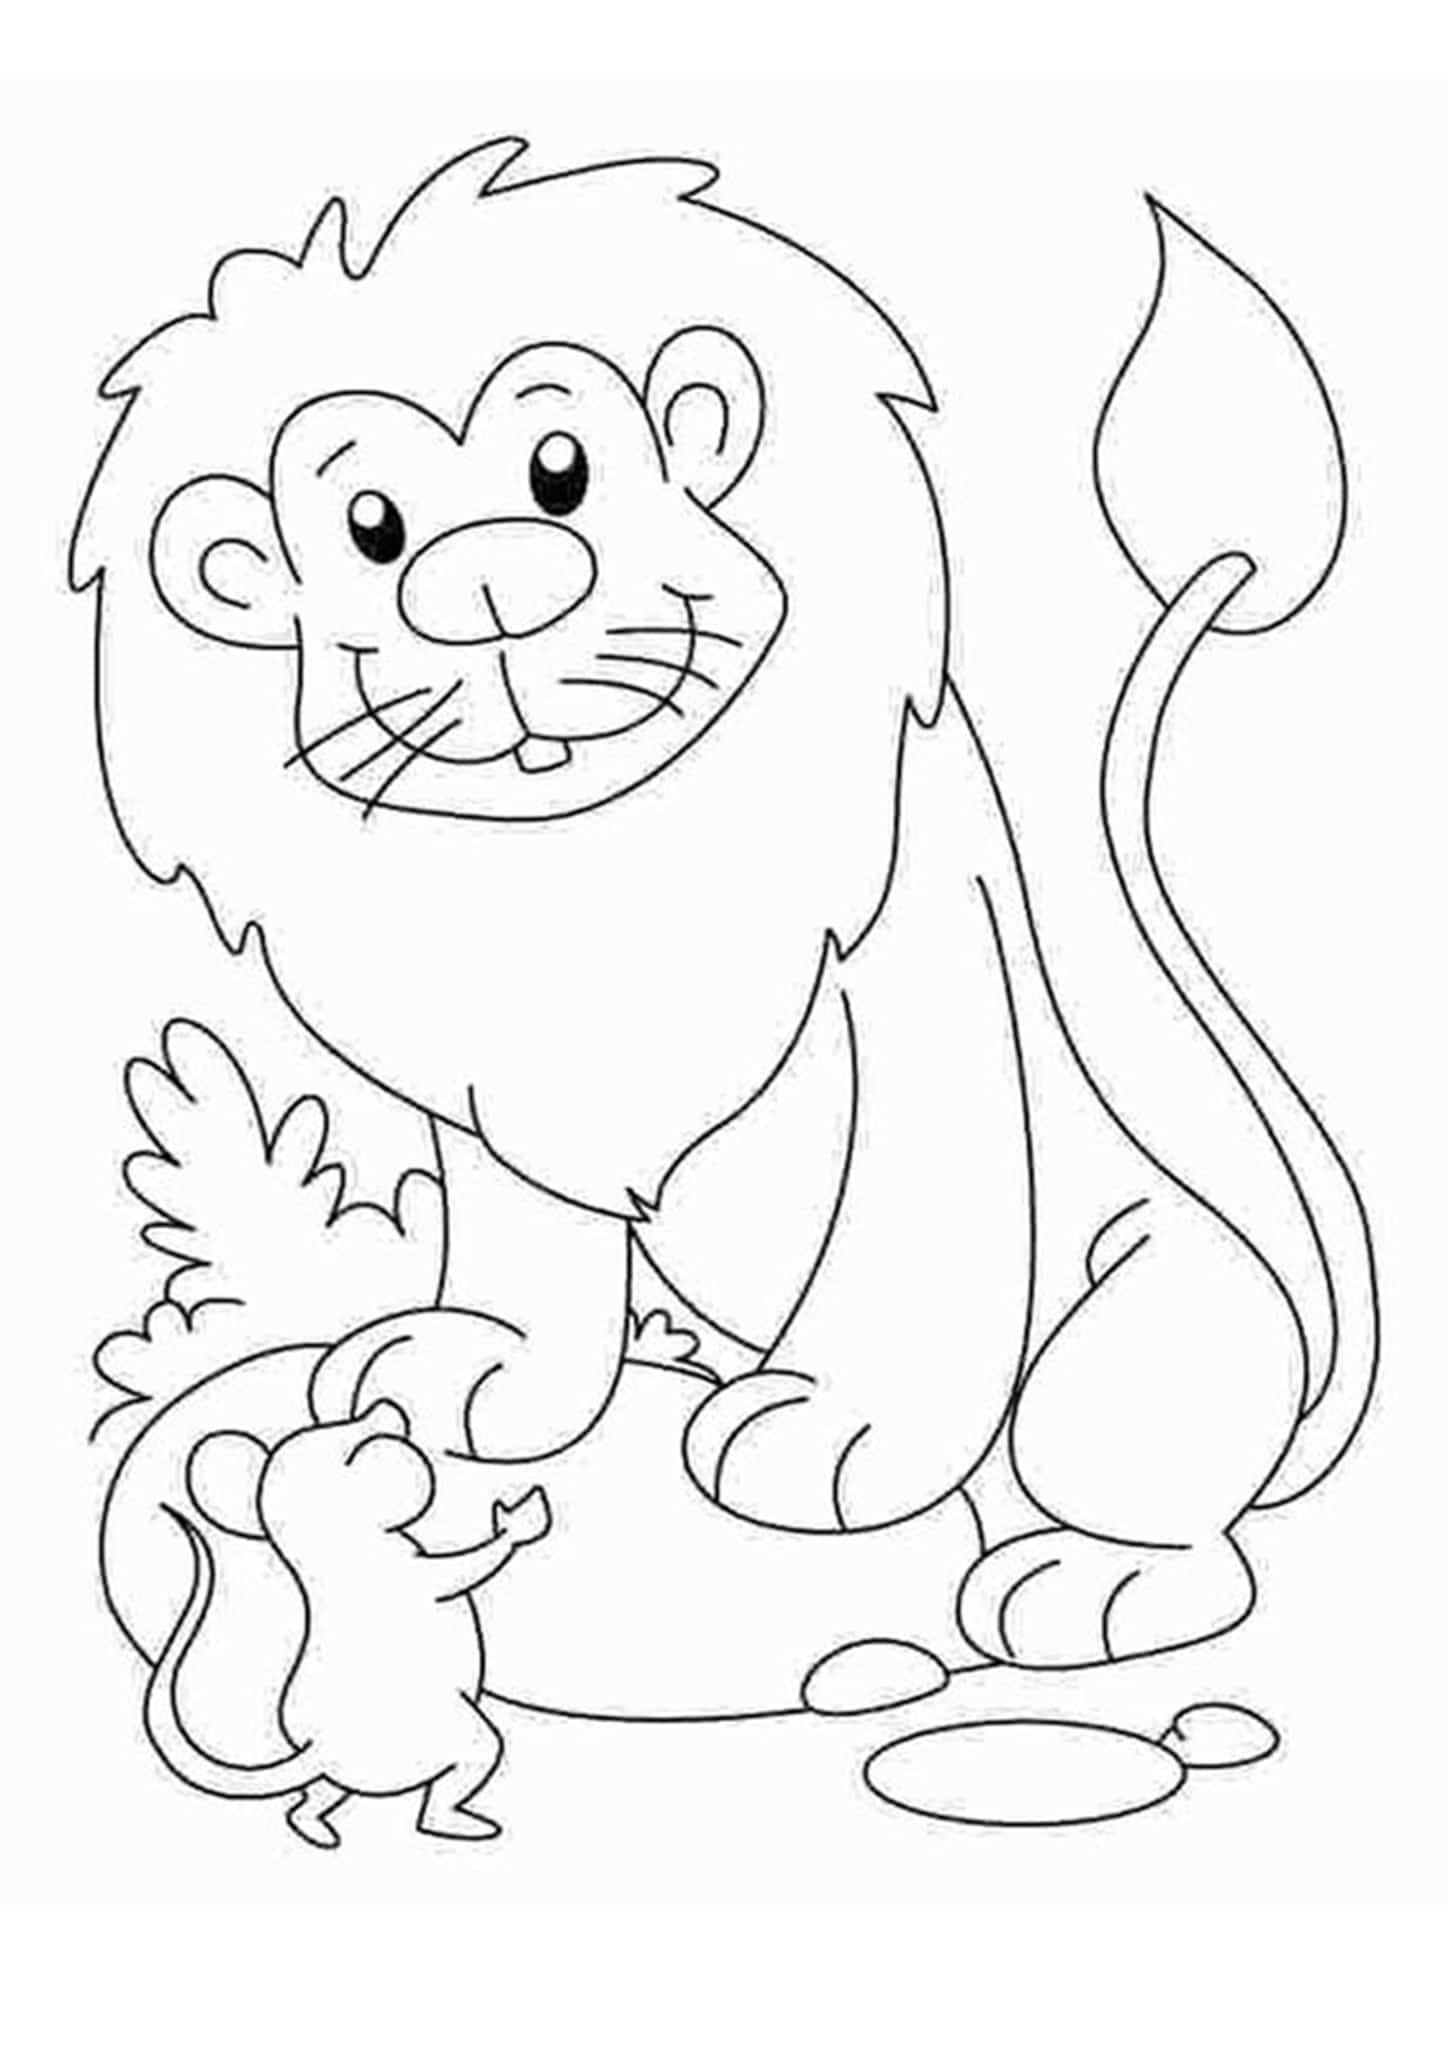 picture of lion coloring page majestic lion lions adult coloring pages of lion coloring page picture